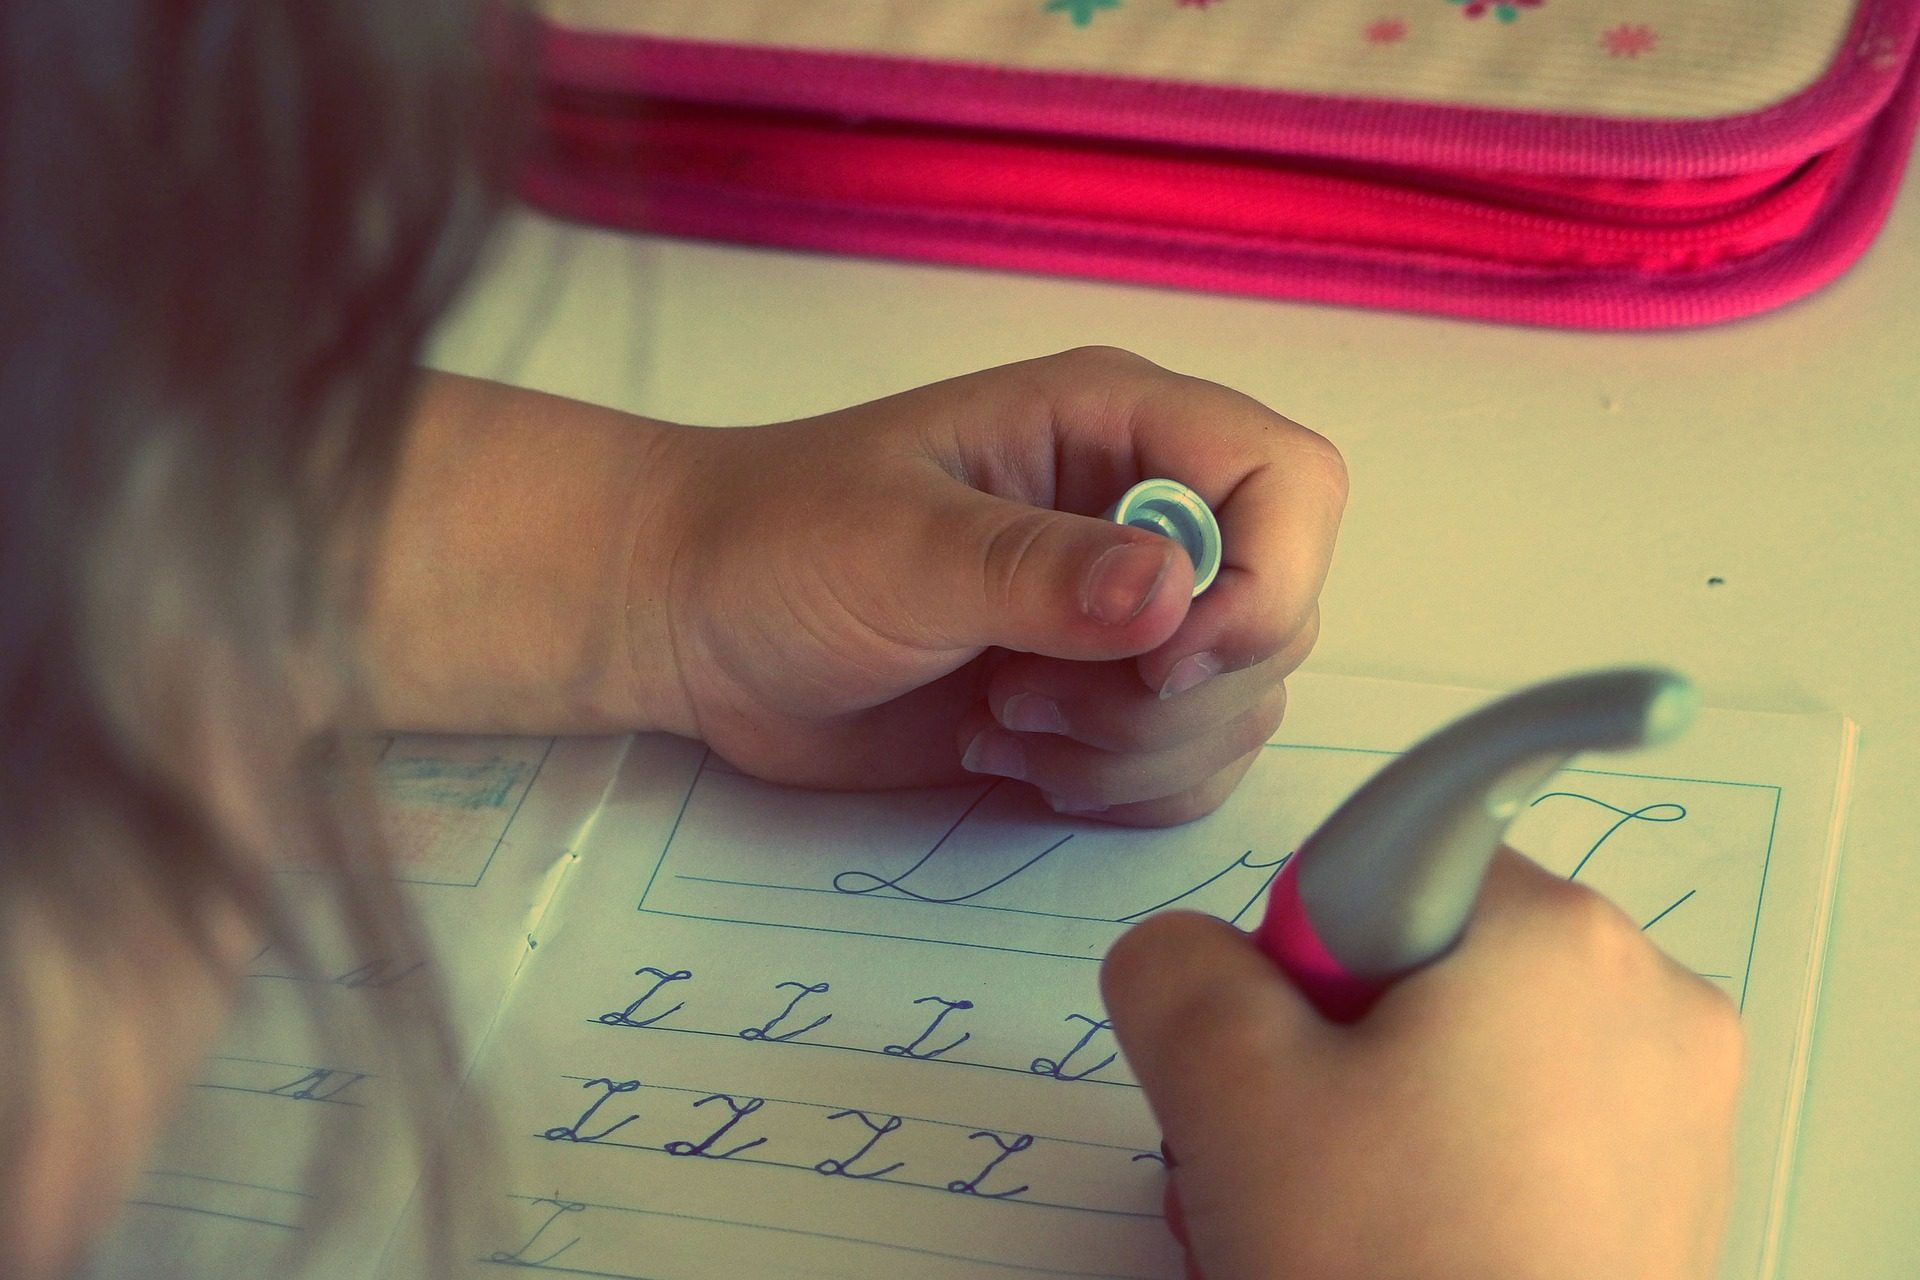 Did you know: homework can build character in kids?